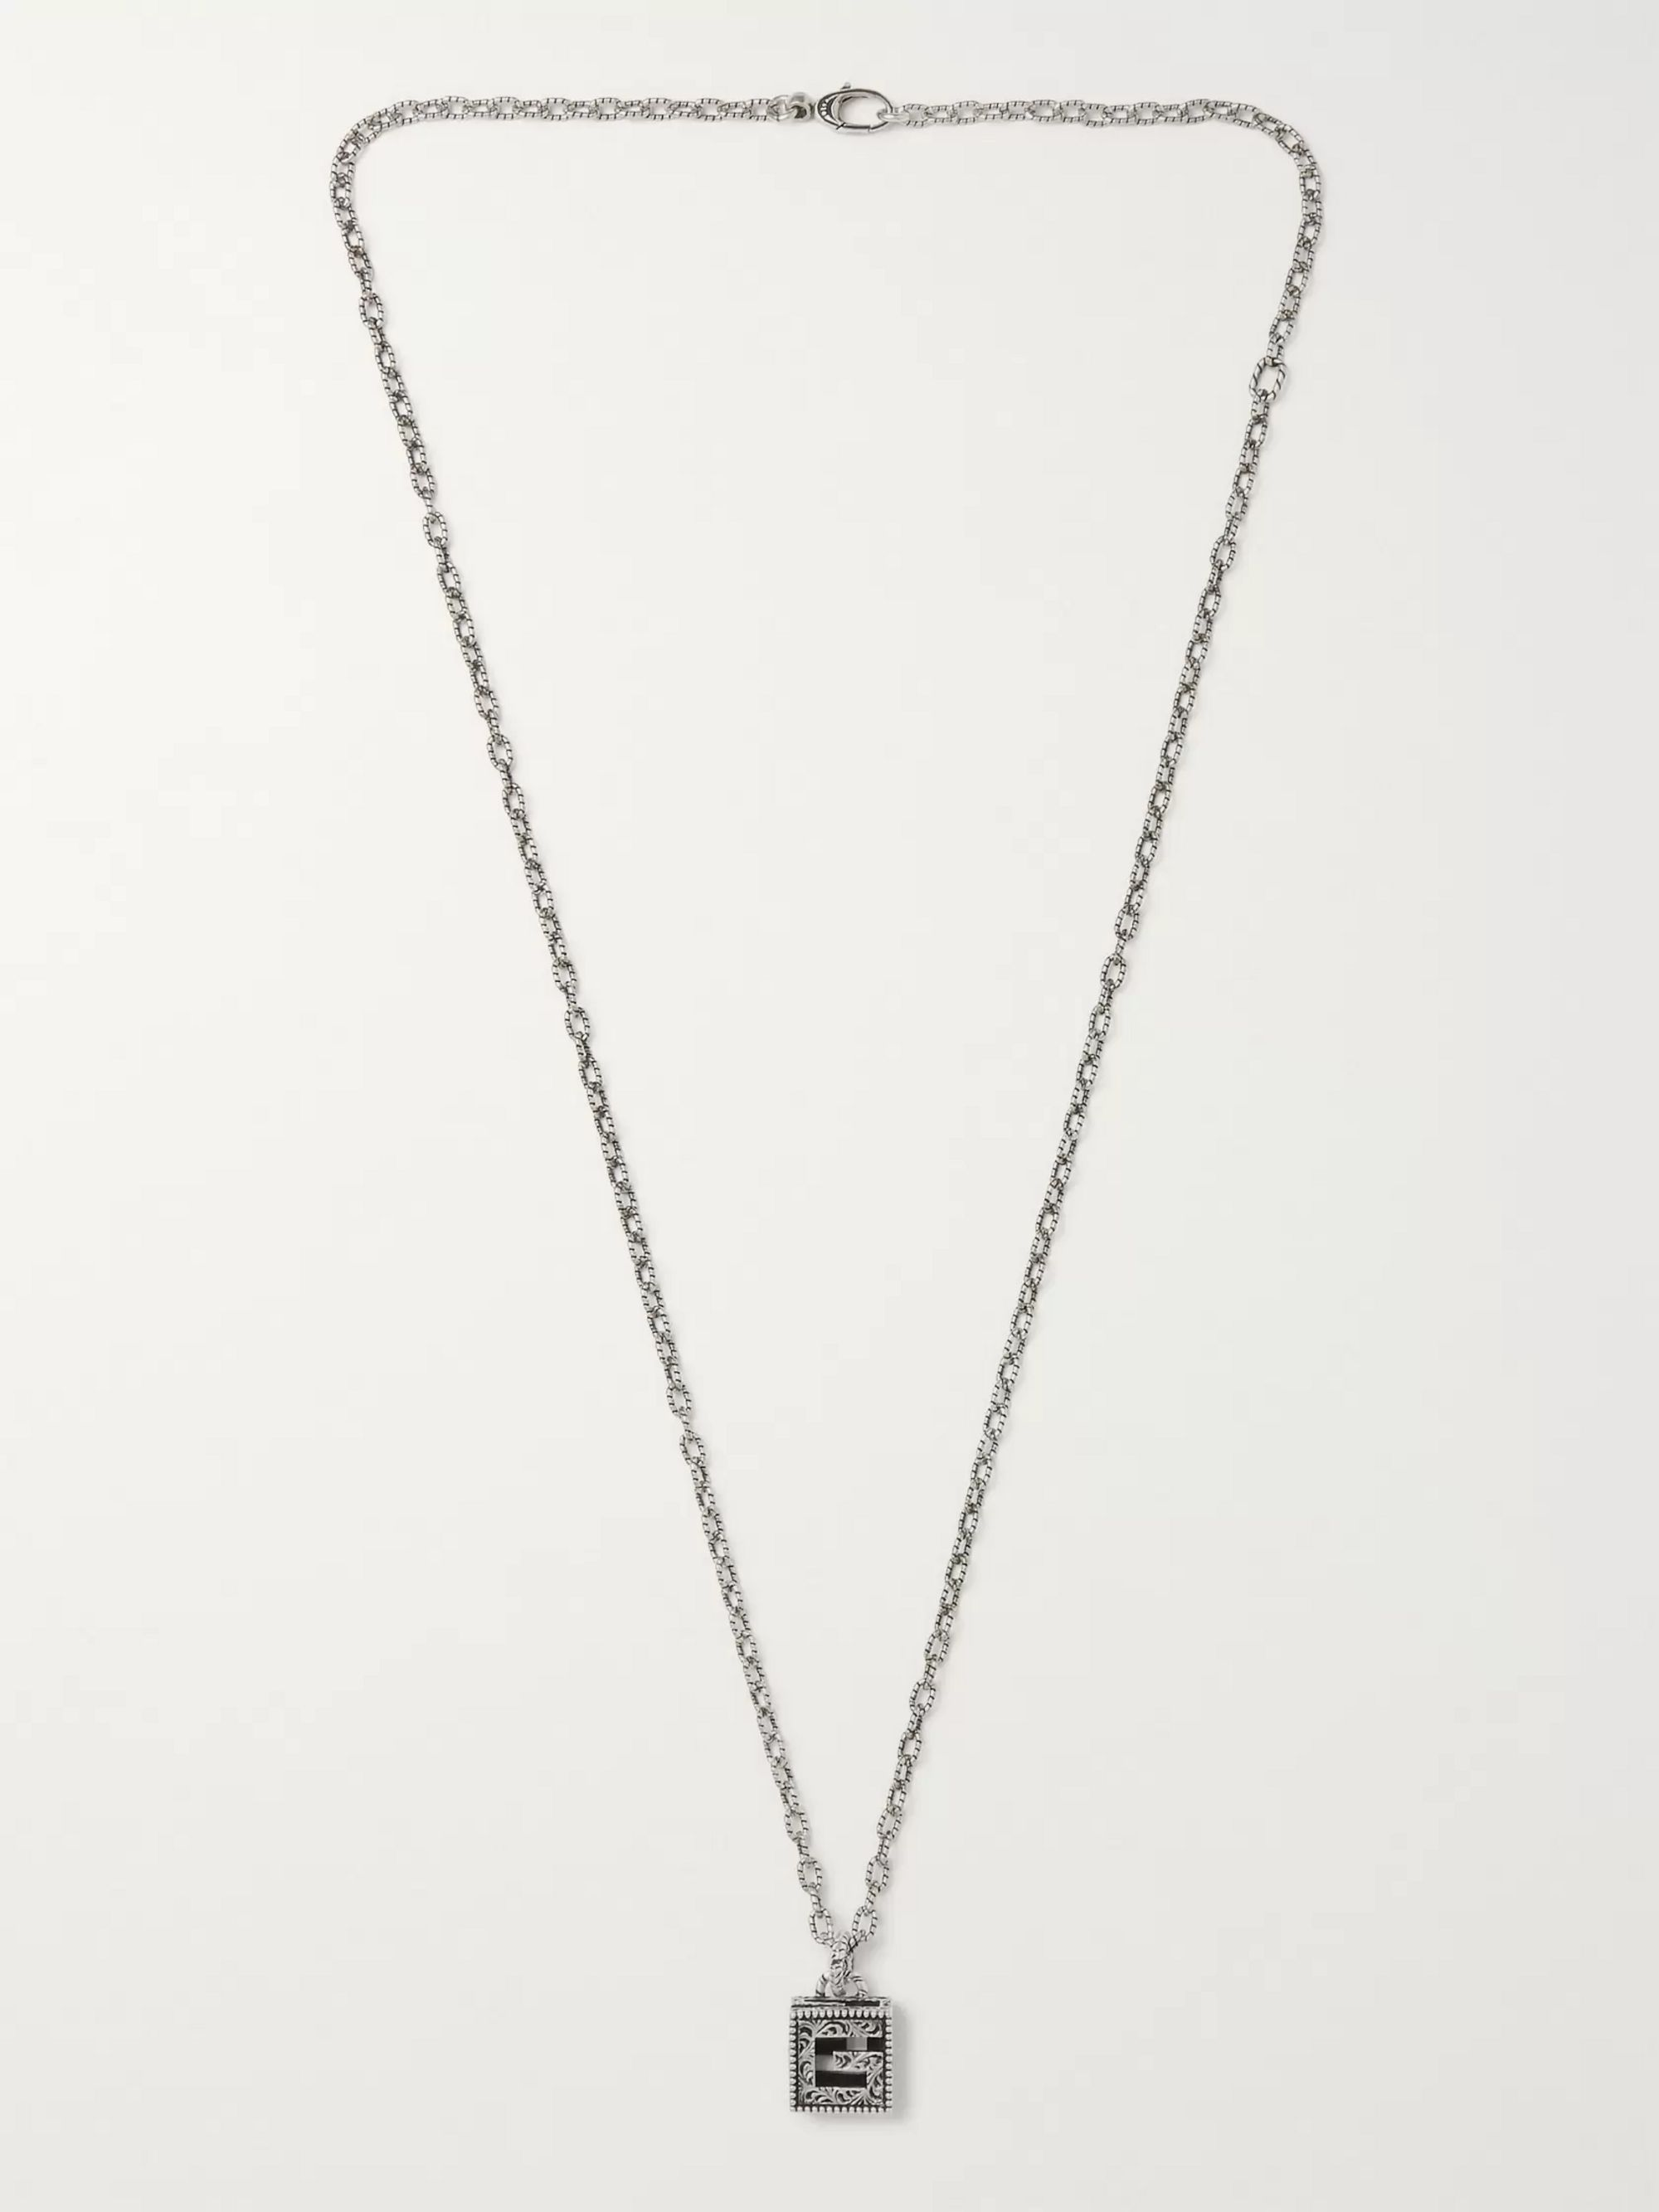 Gucci Engraved Burnished Sterling Silver Necklace